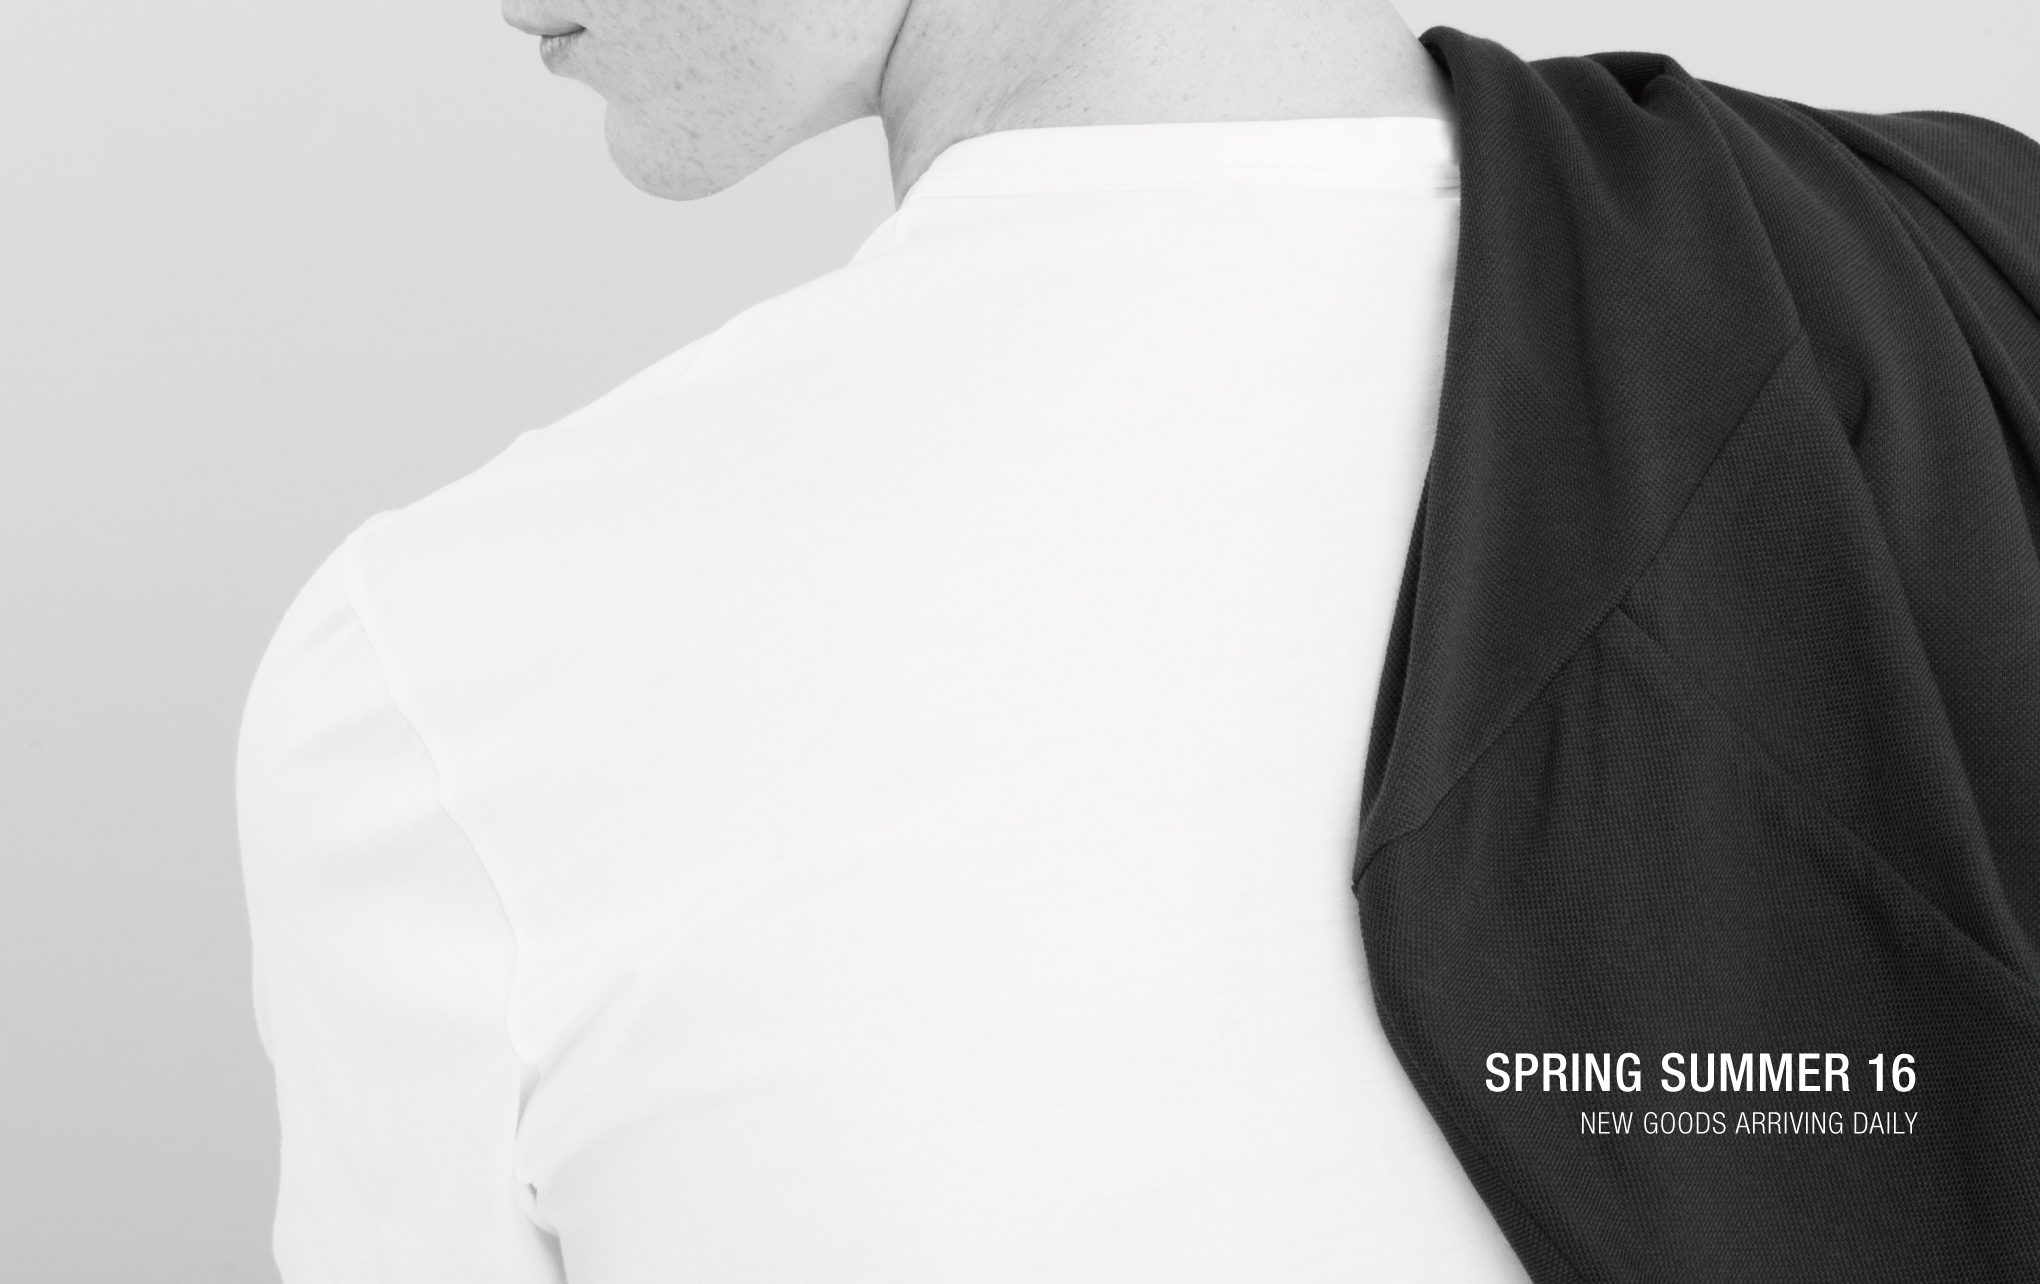 SUNSPEL SPRING 16 - Norsestore.com